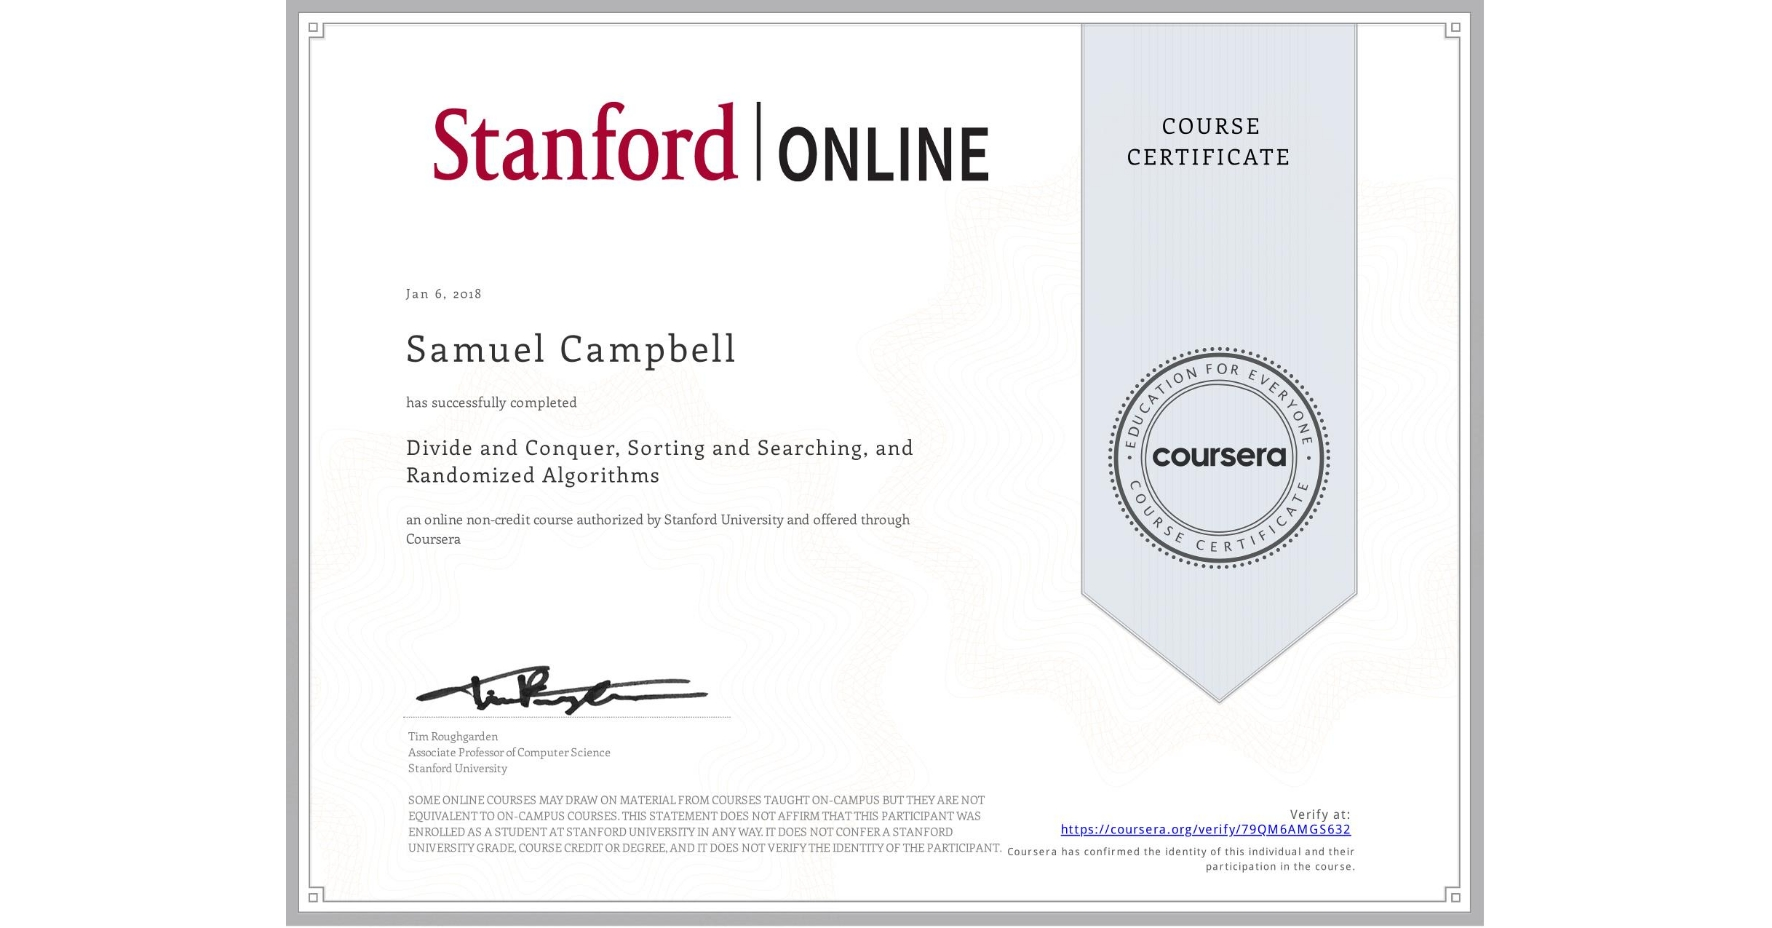 View certificate for Samuel Campbell , Divide and Conquer, Sorting and Searching, and Randomized Algorithms, an online non-credit course authorized by Stanford University and offered through Coursera